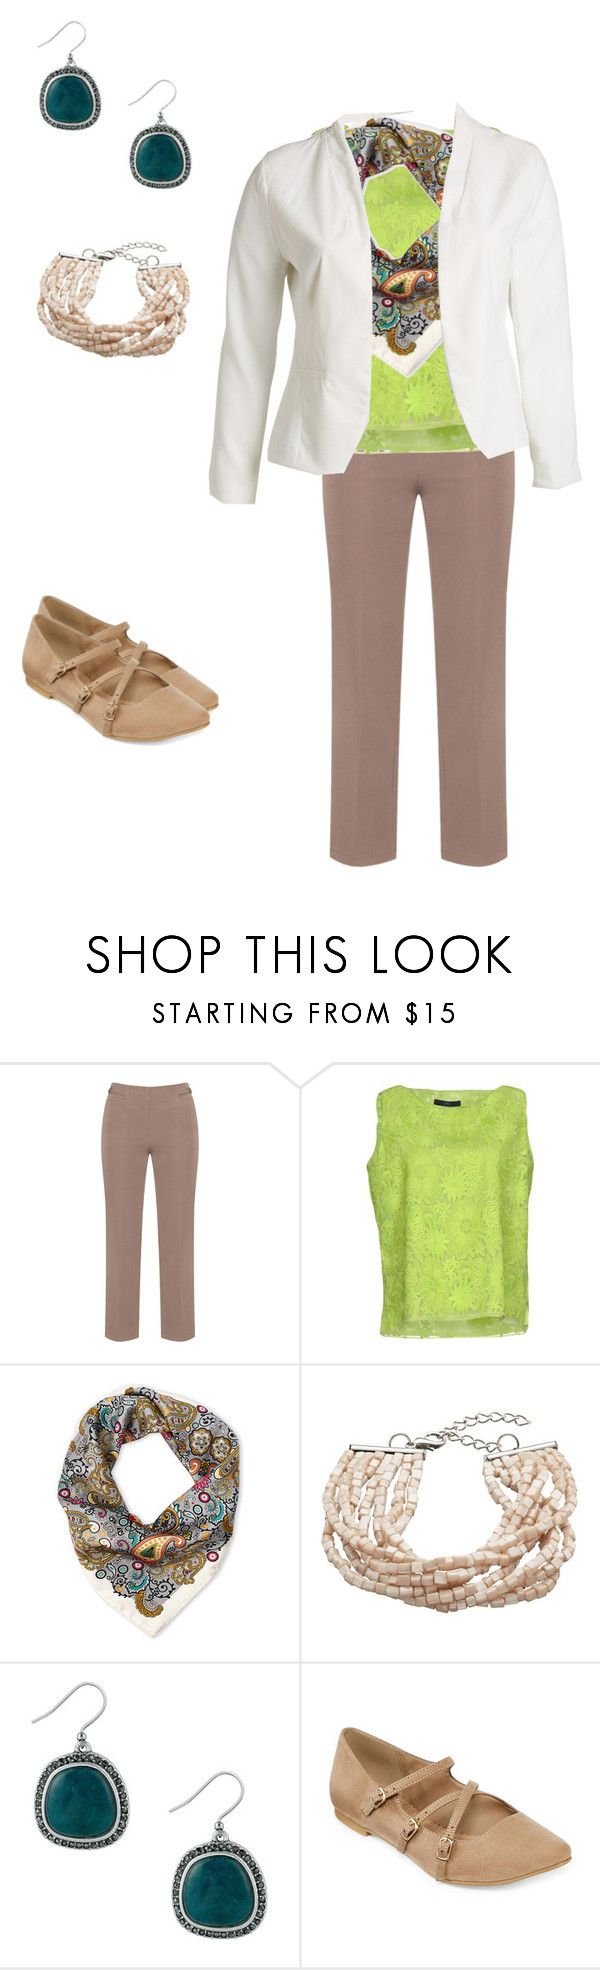 """""""Untitled #124"""" by deb-coe on Polyvore featuring Manon Baptiste, Blue Les Copains, Pollini, John Lewis, Lucky Brand, Restricted, Blu Pepper and plus size clothing"""